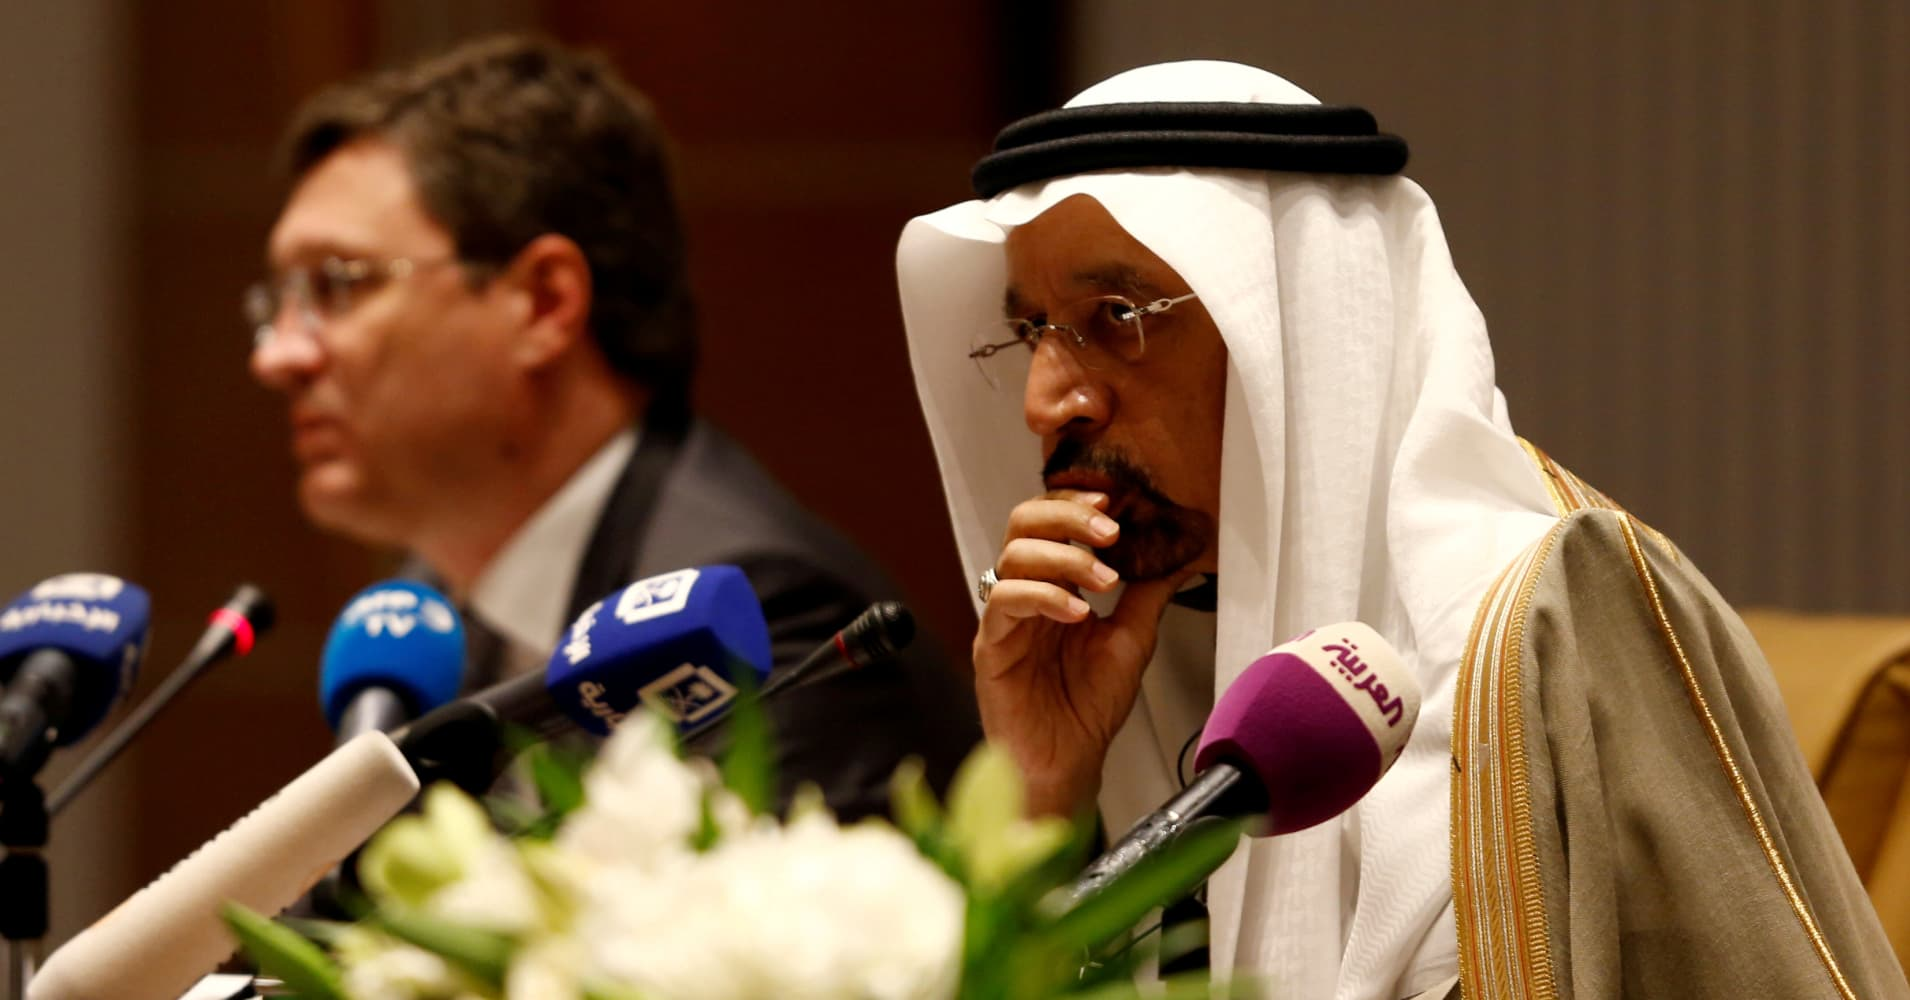 OPEC meeting ends with no decision on production levels